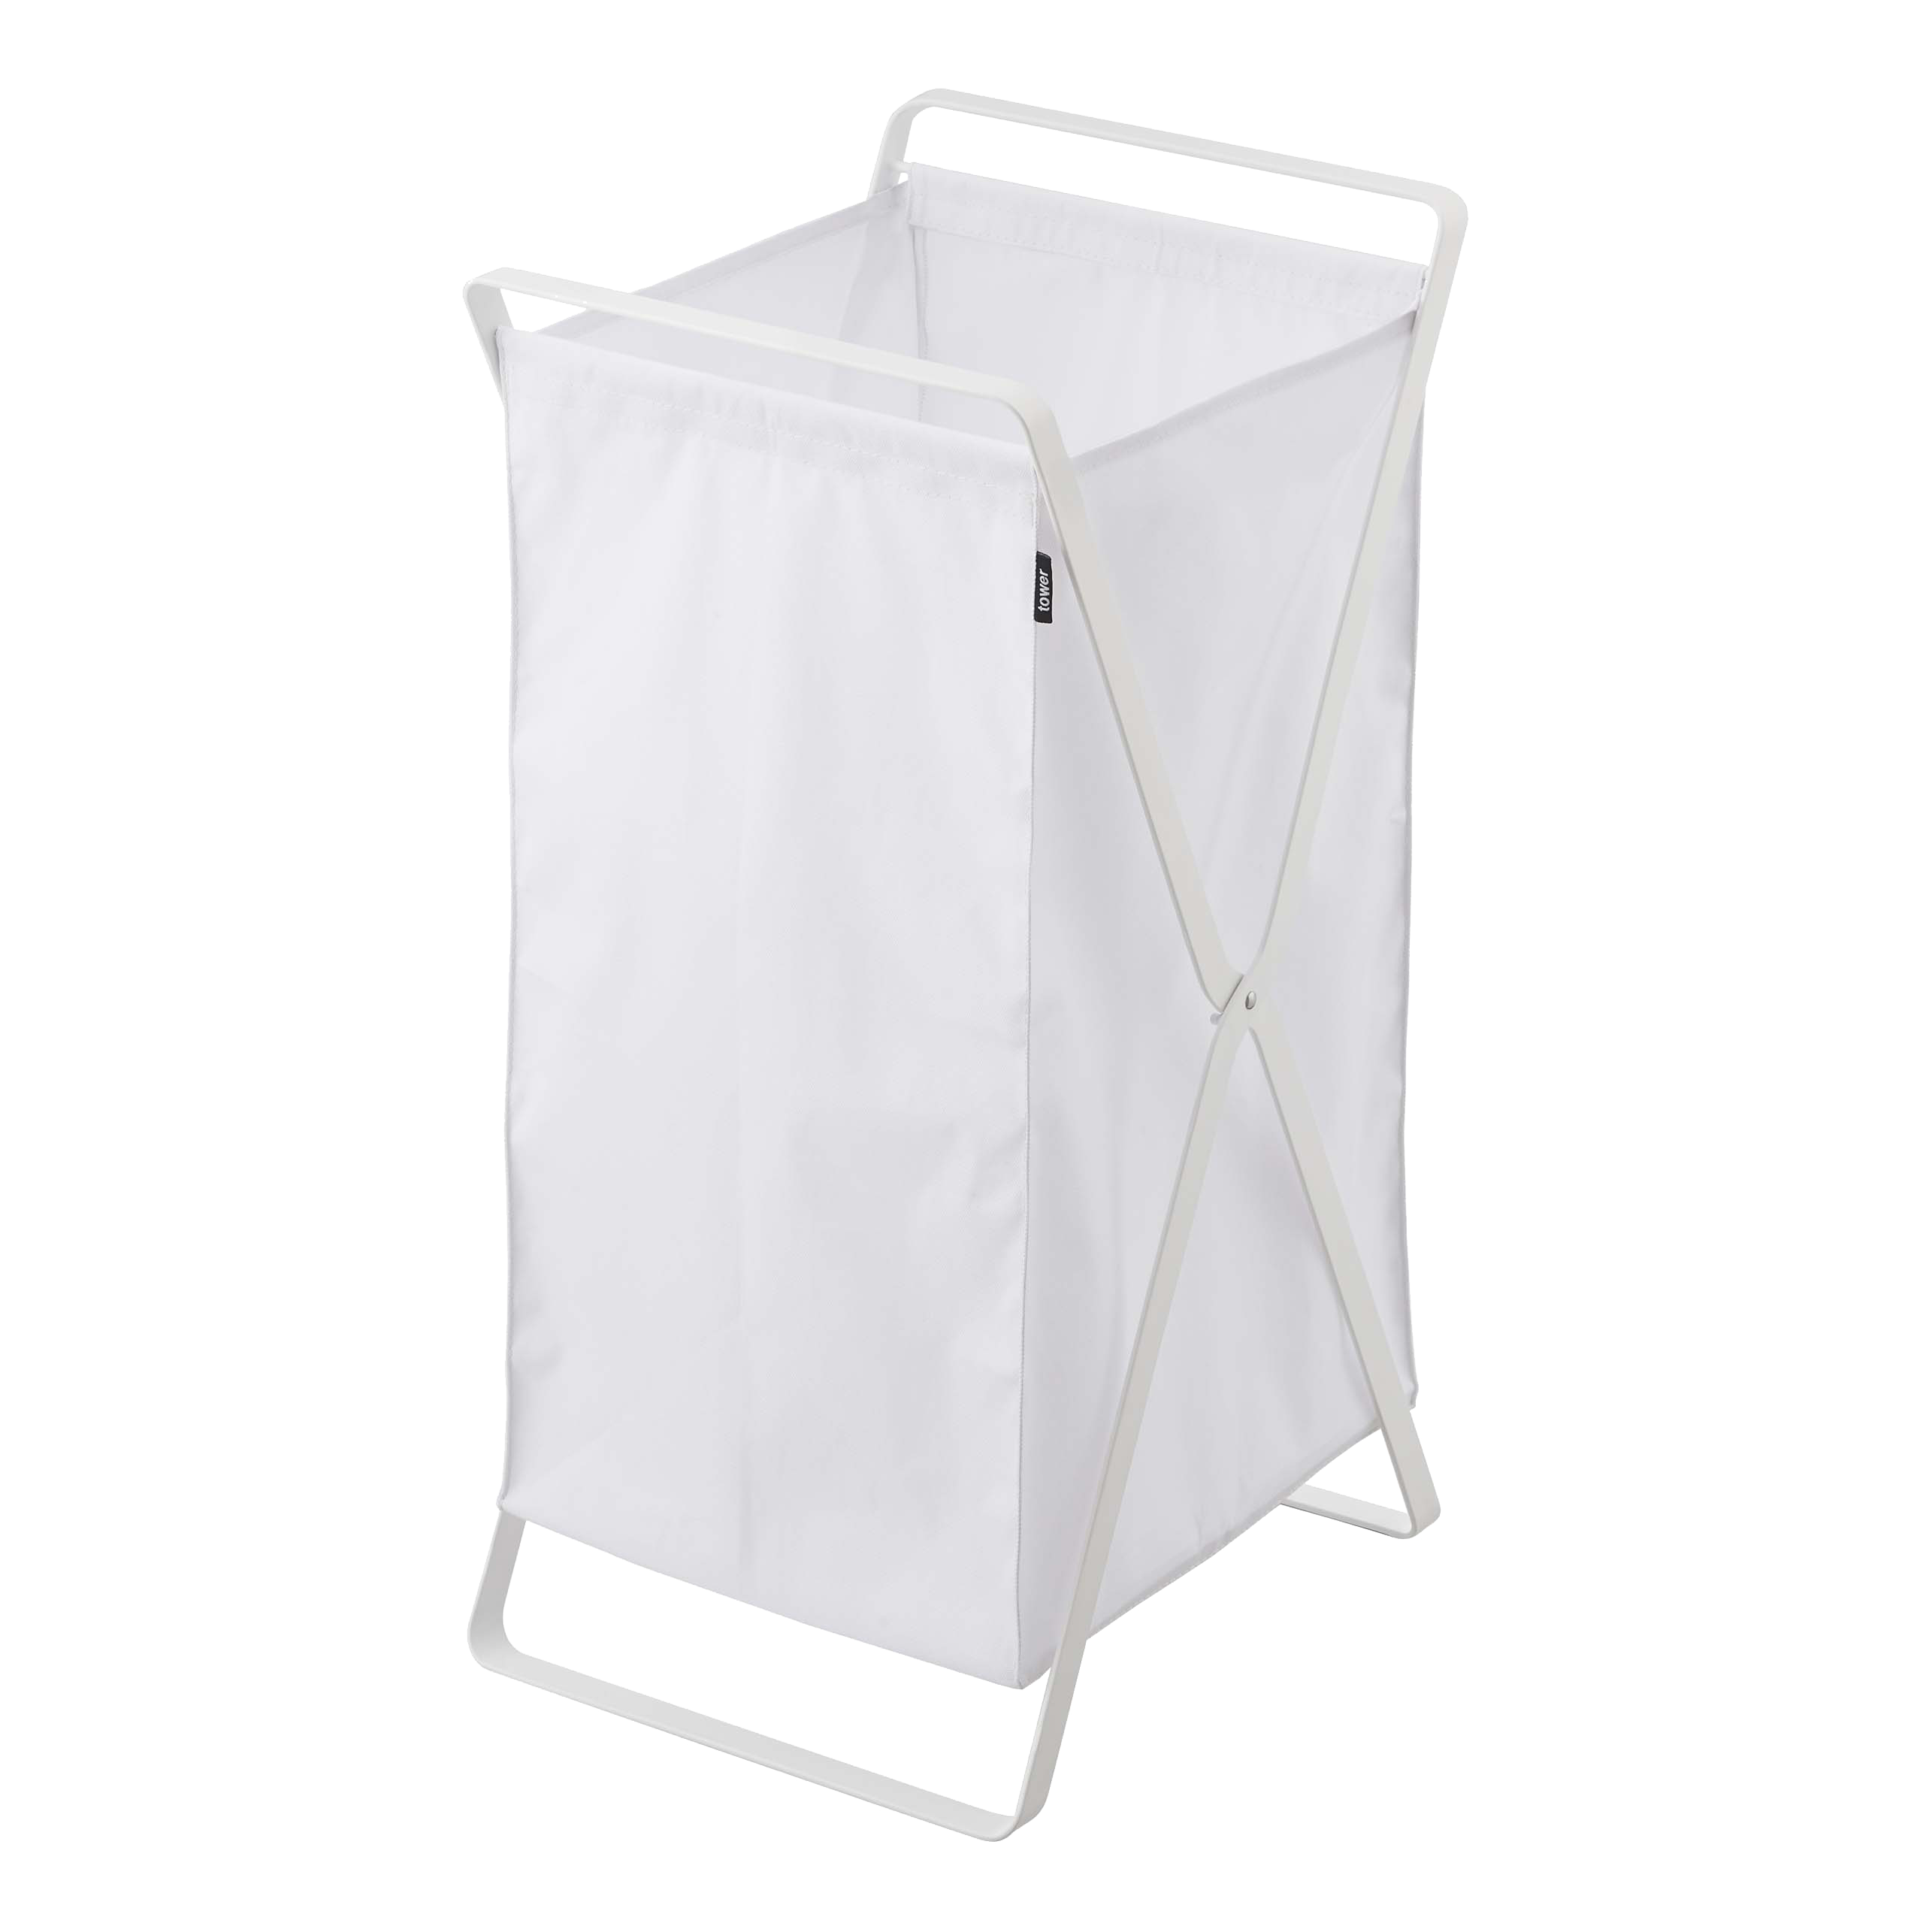 Laundry Hamper Storage Organizer In 2020 Laundry Hamper Laundry